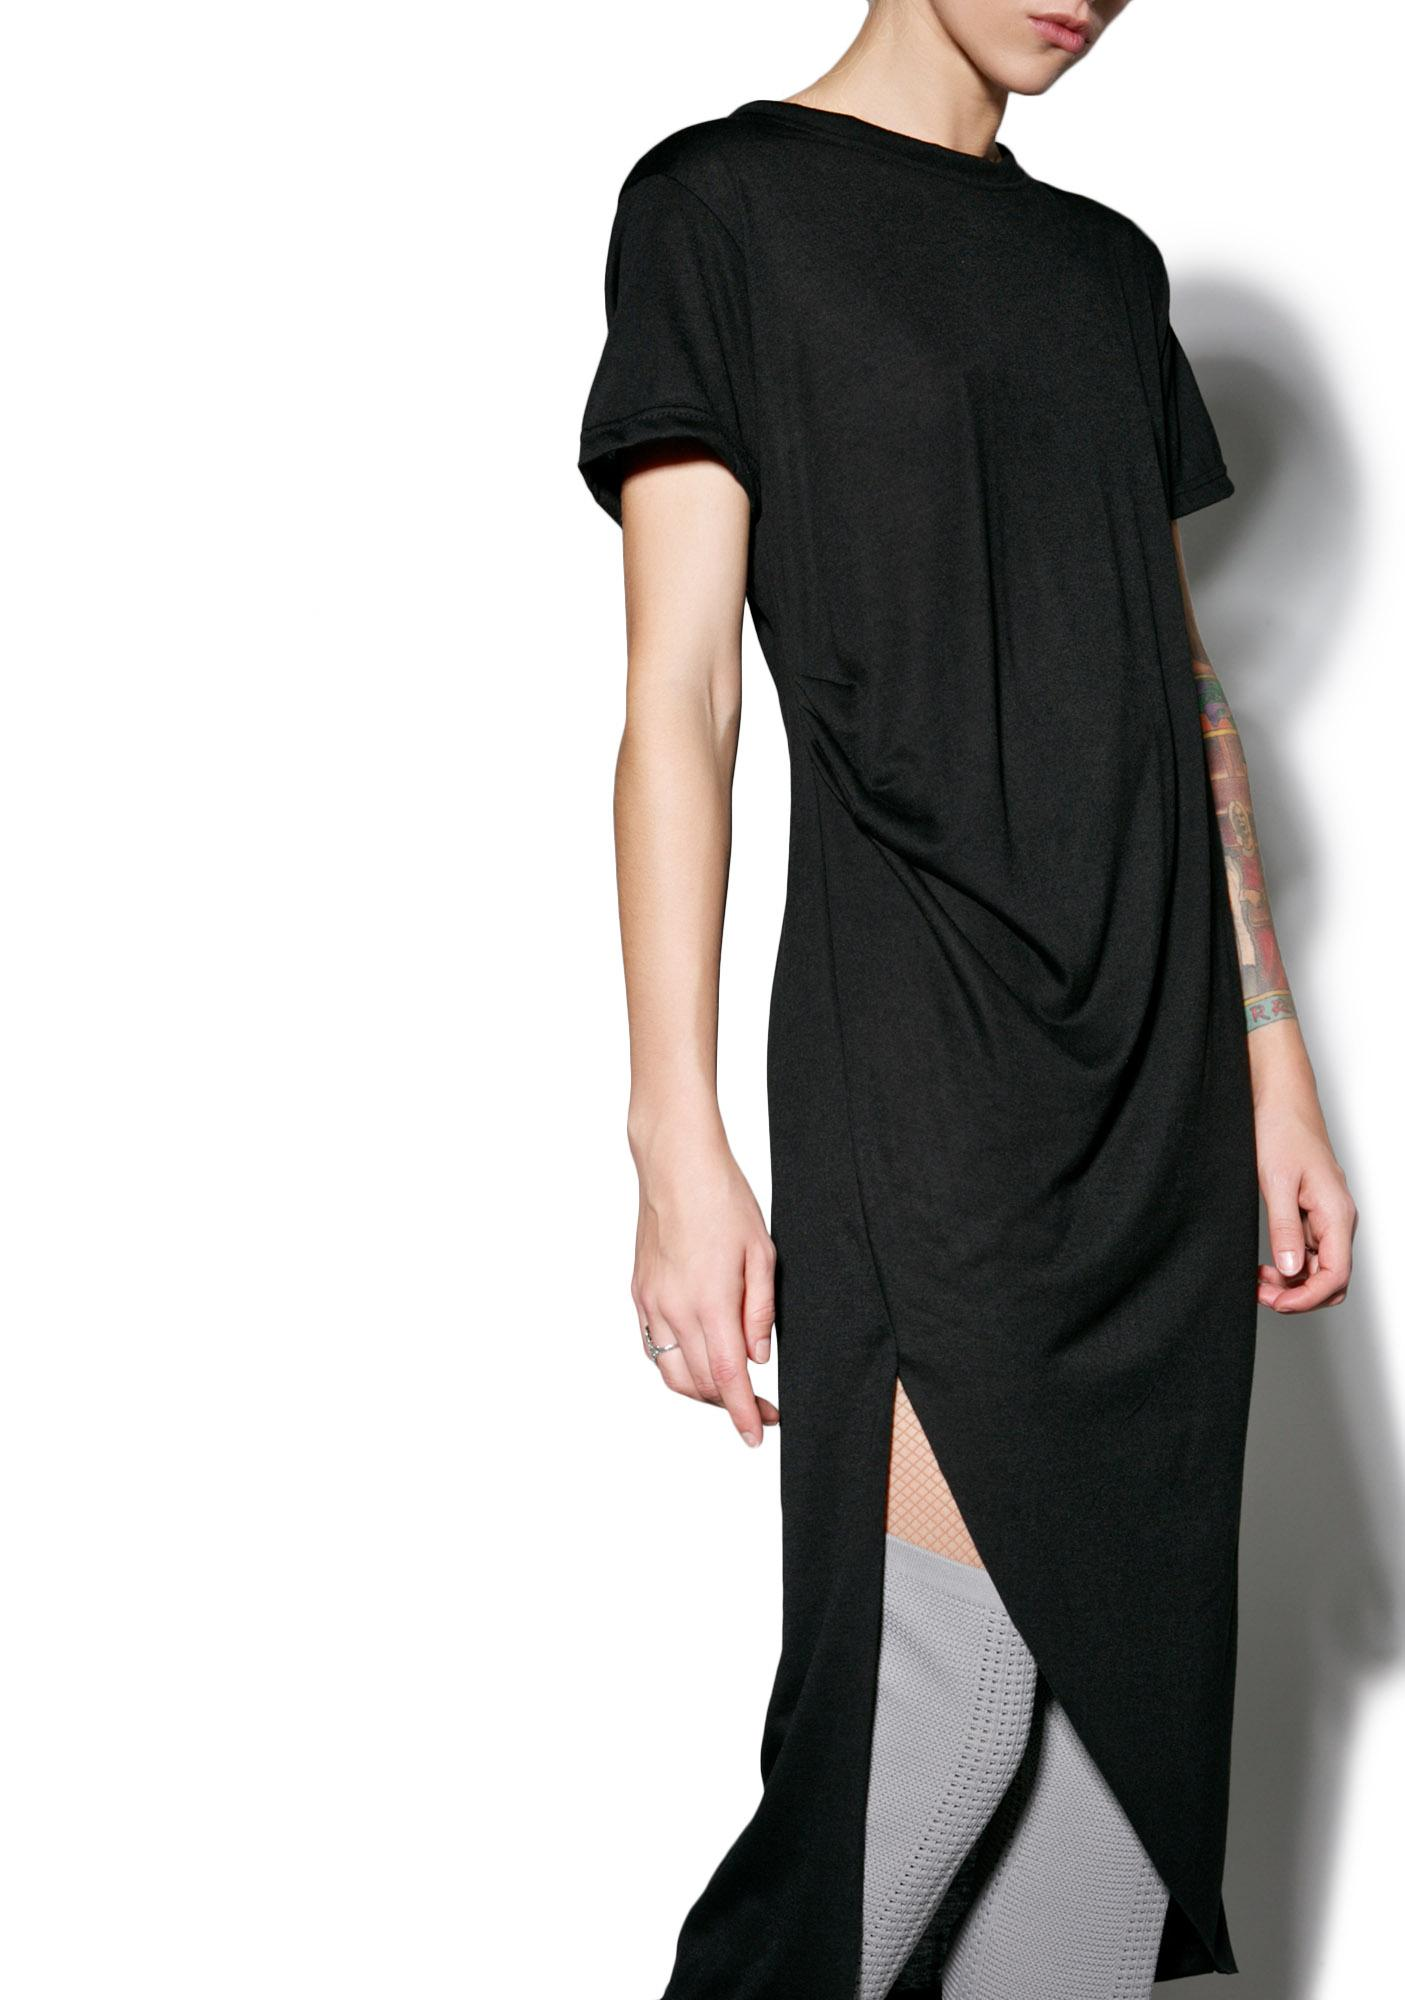 MNML Complexities Midi Dress